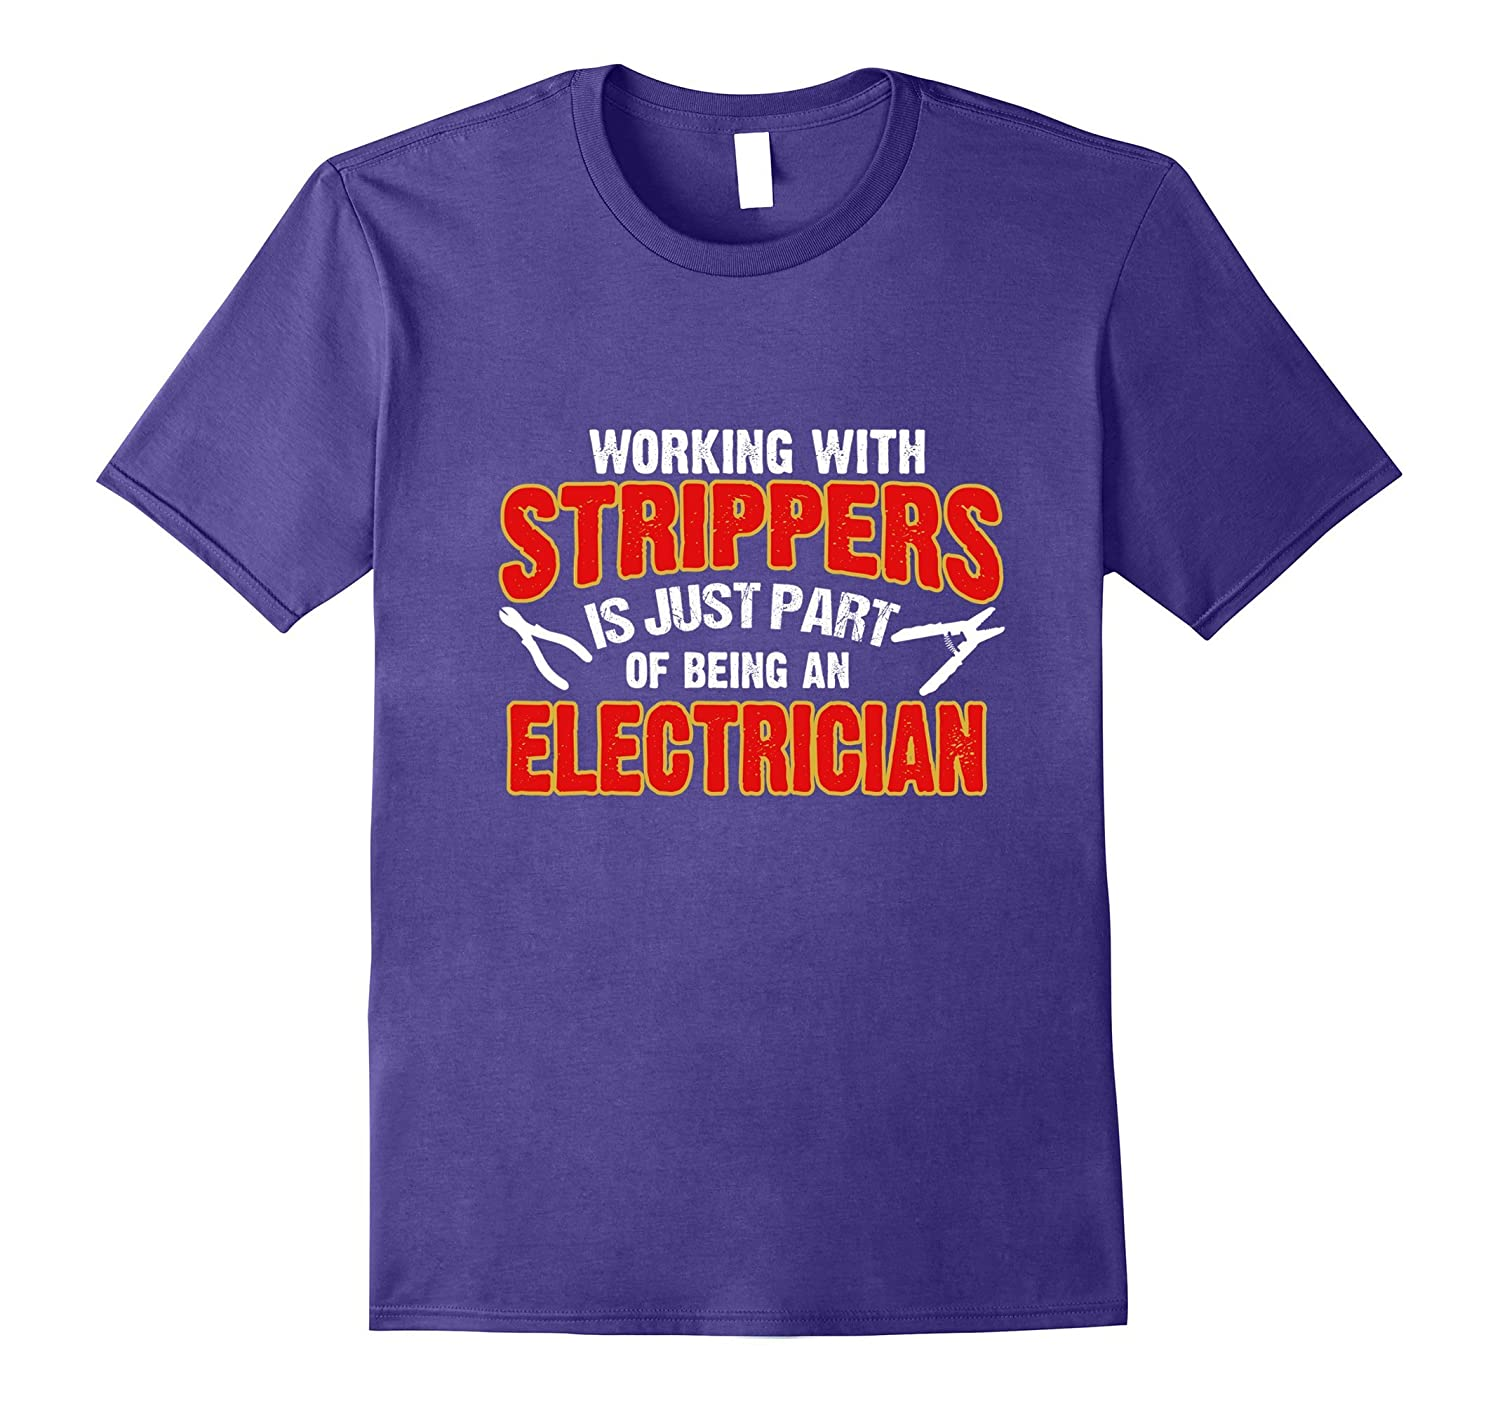 Electrician working with Strippers T-shirt-TJ